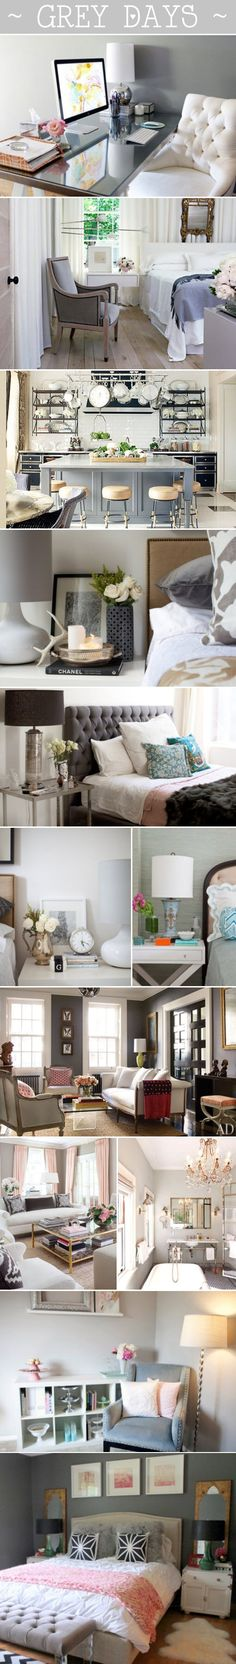 Decorating in Grey - Gray